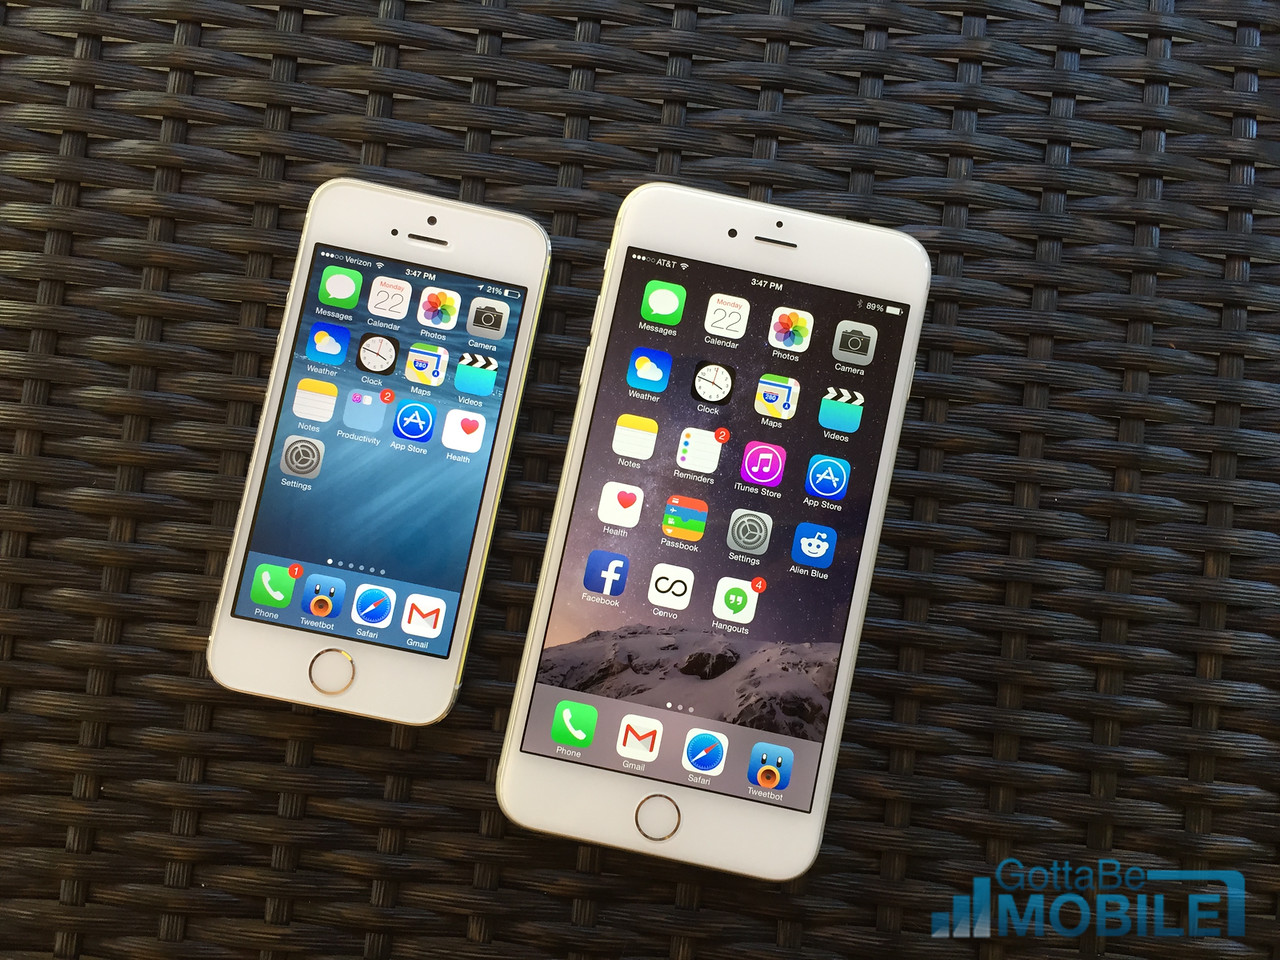 iPhone 6 and iPhone 6 Plus Cases Show Up Before the Devices